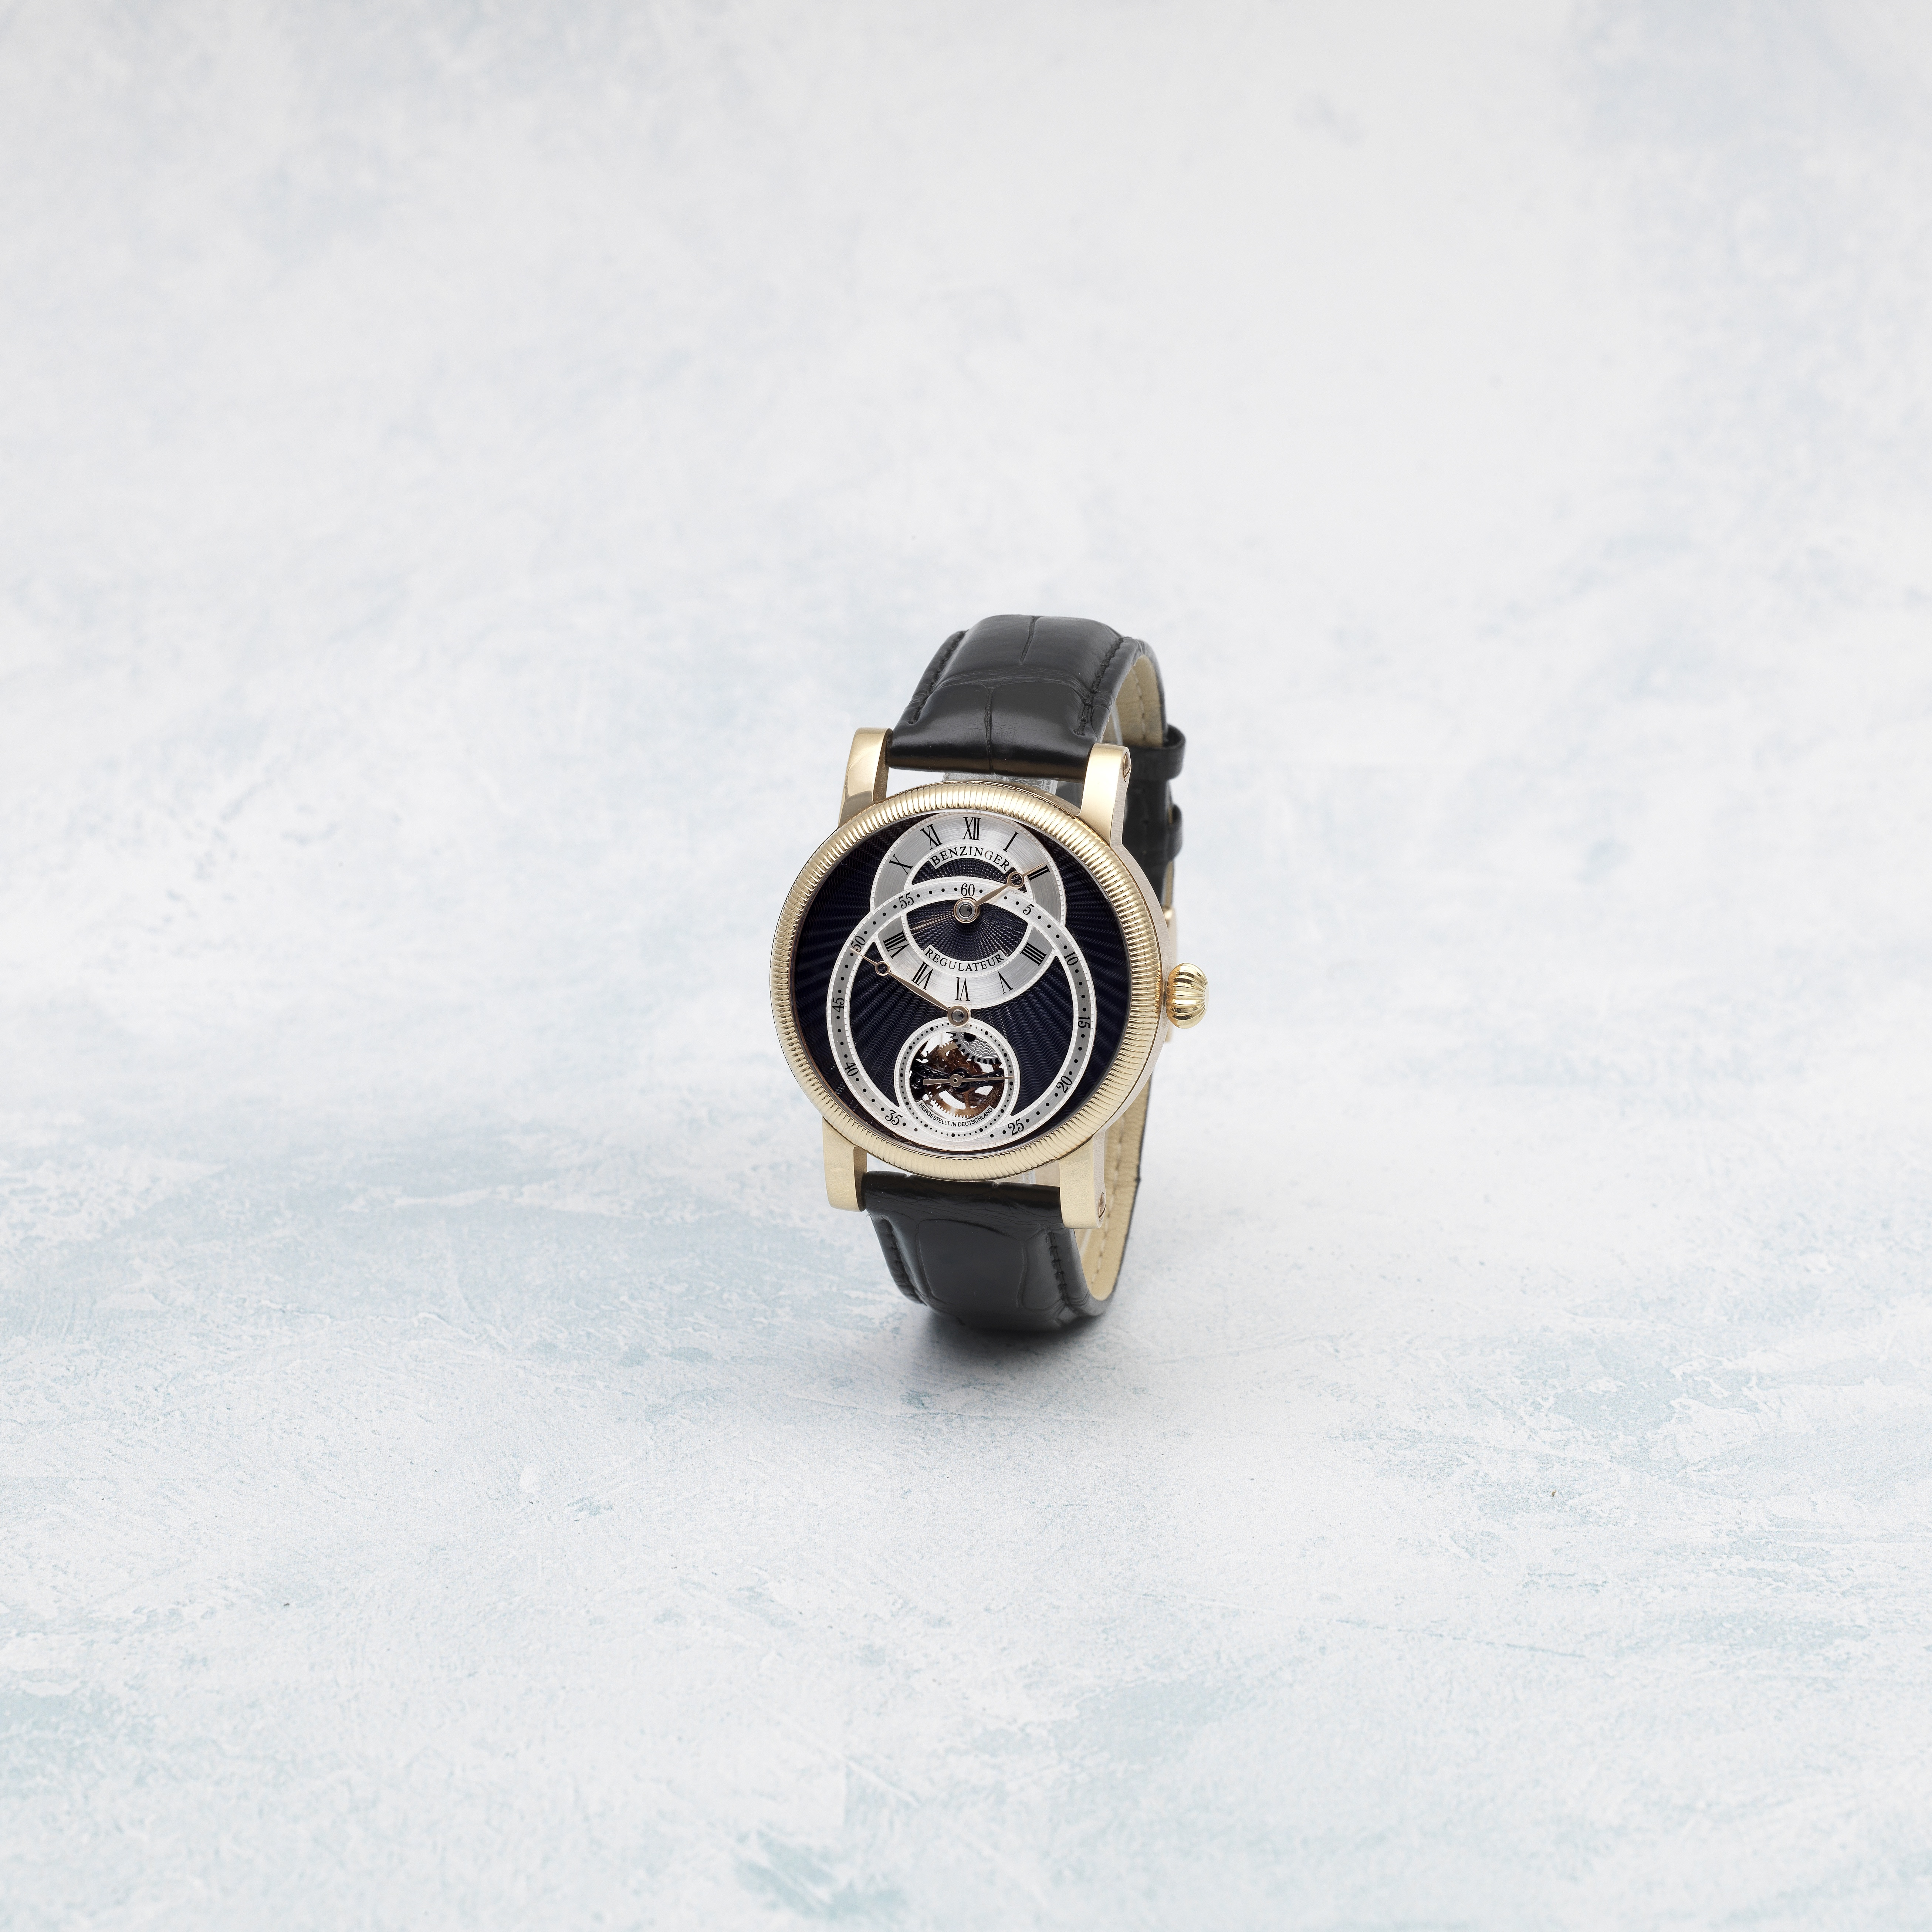 Benzinger. An 18k rose gold manual wind wristwatch with regulator style dial and skeletonised mov...